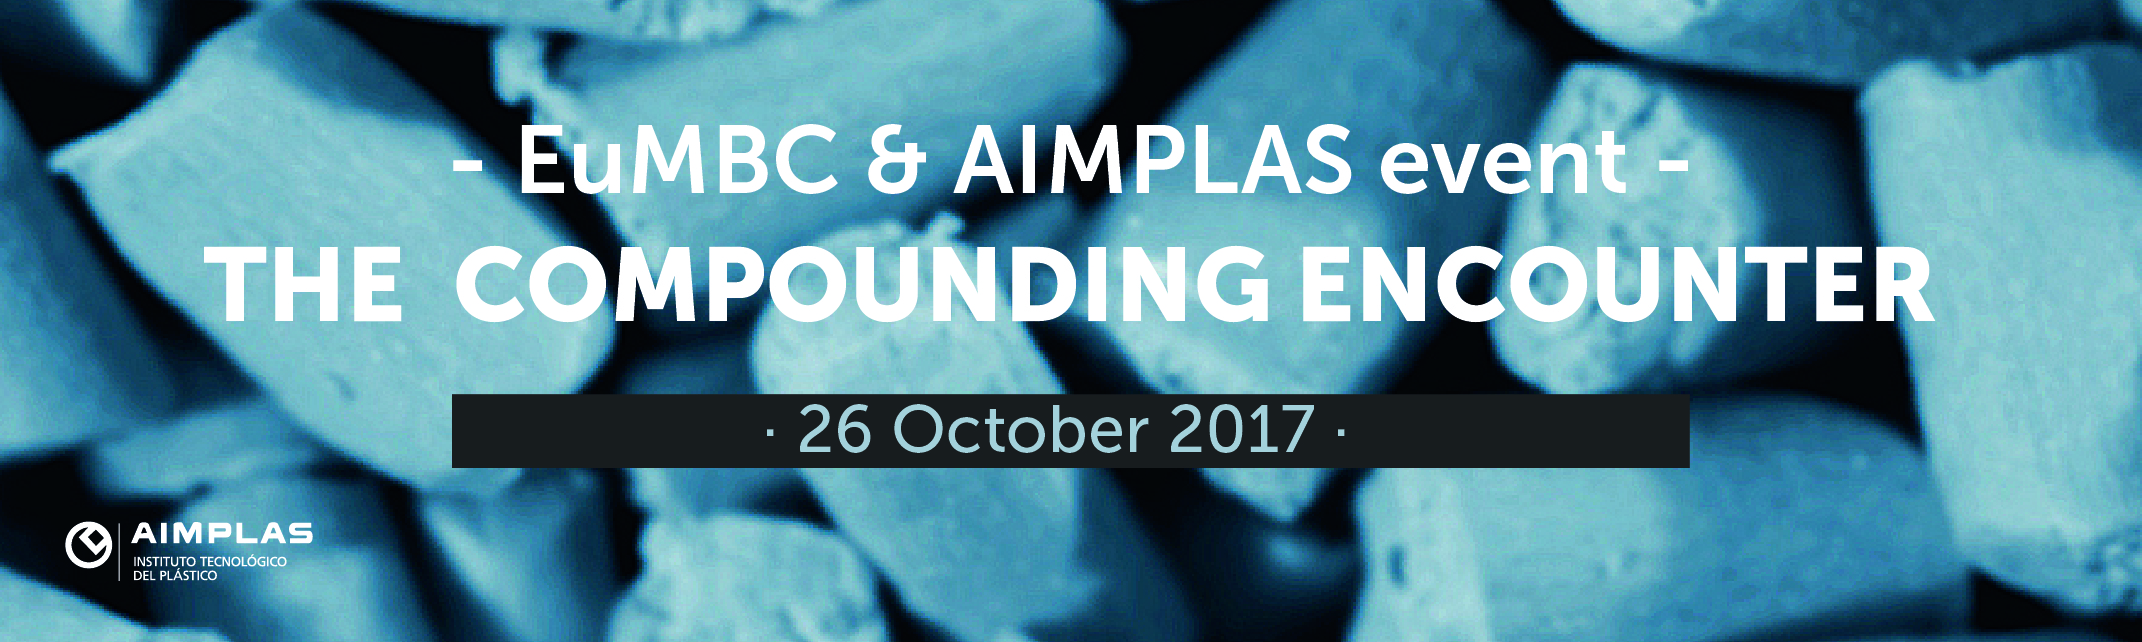 Imagen cabecera: EuMBC & AIMPLAS event. The Compounding encounter